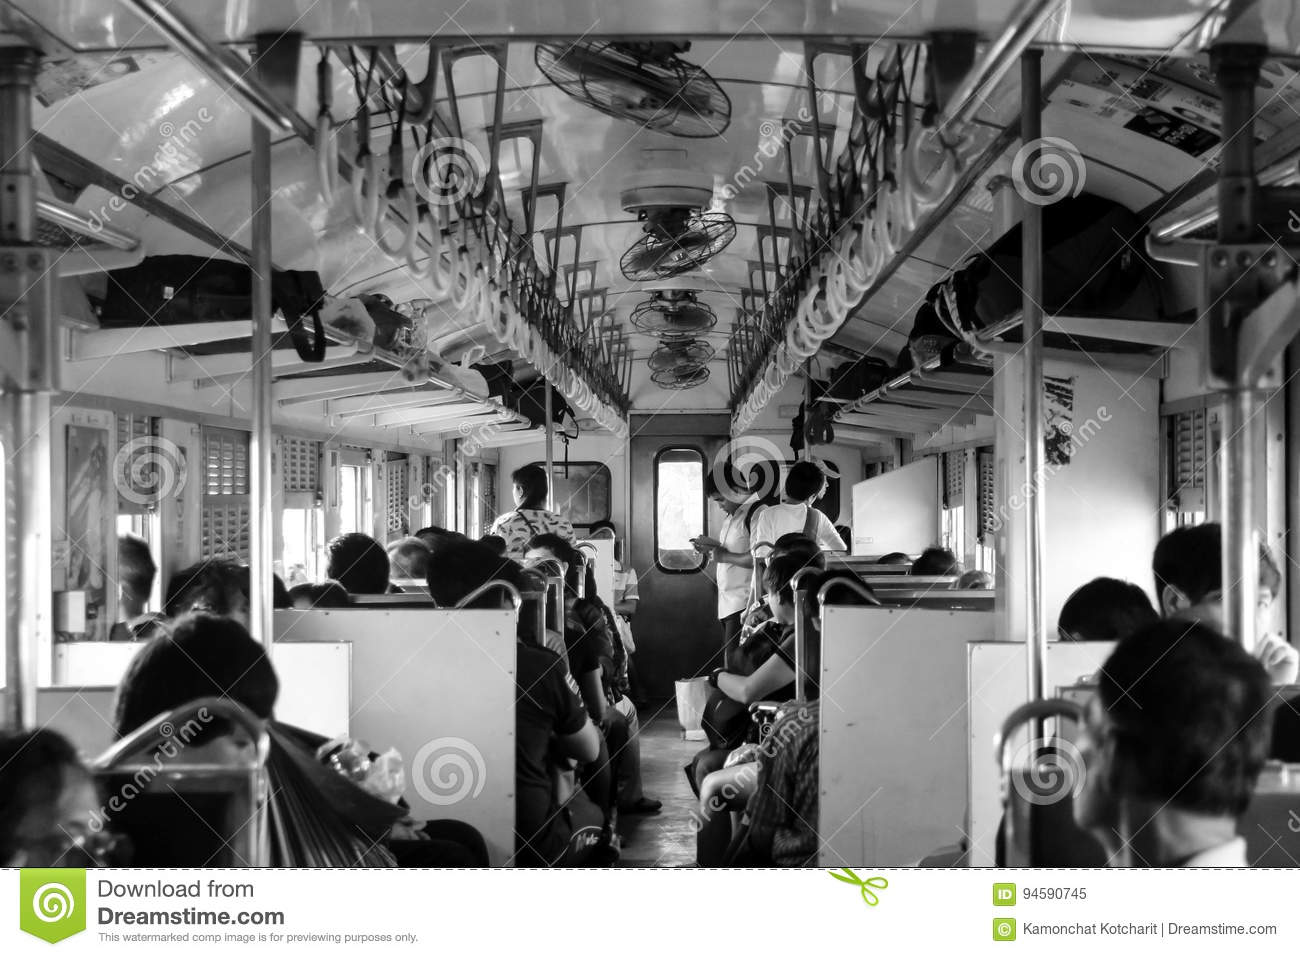 CHACHOENGSAO, THAILAND - MARCH 13, 2016: Black and white picture of passengers